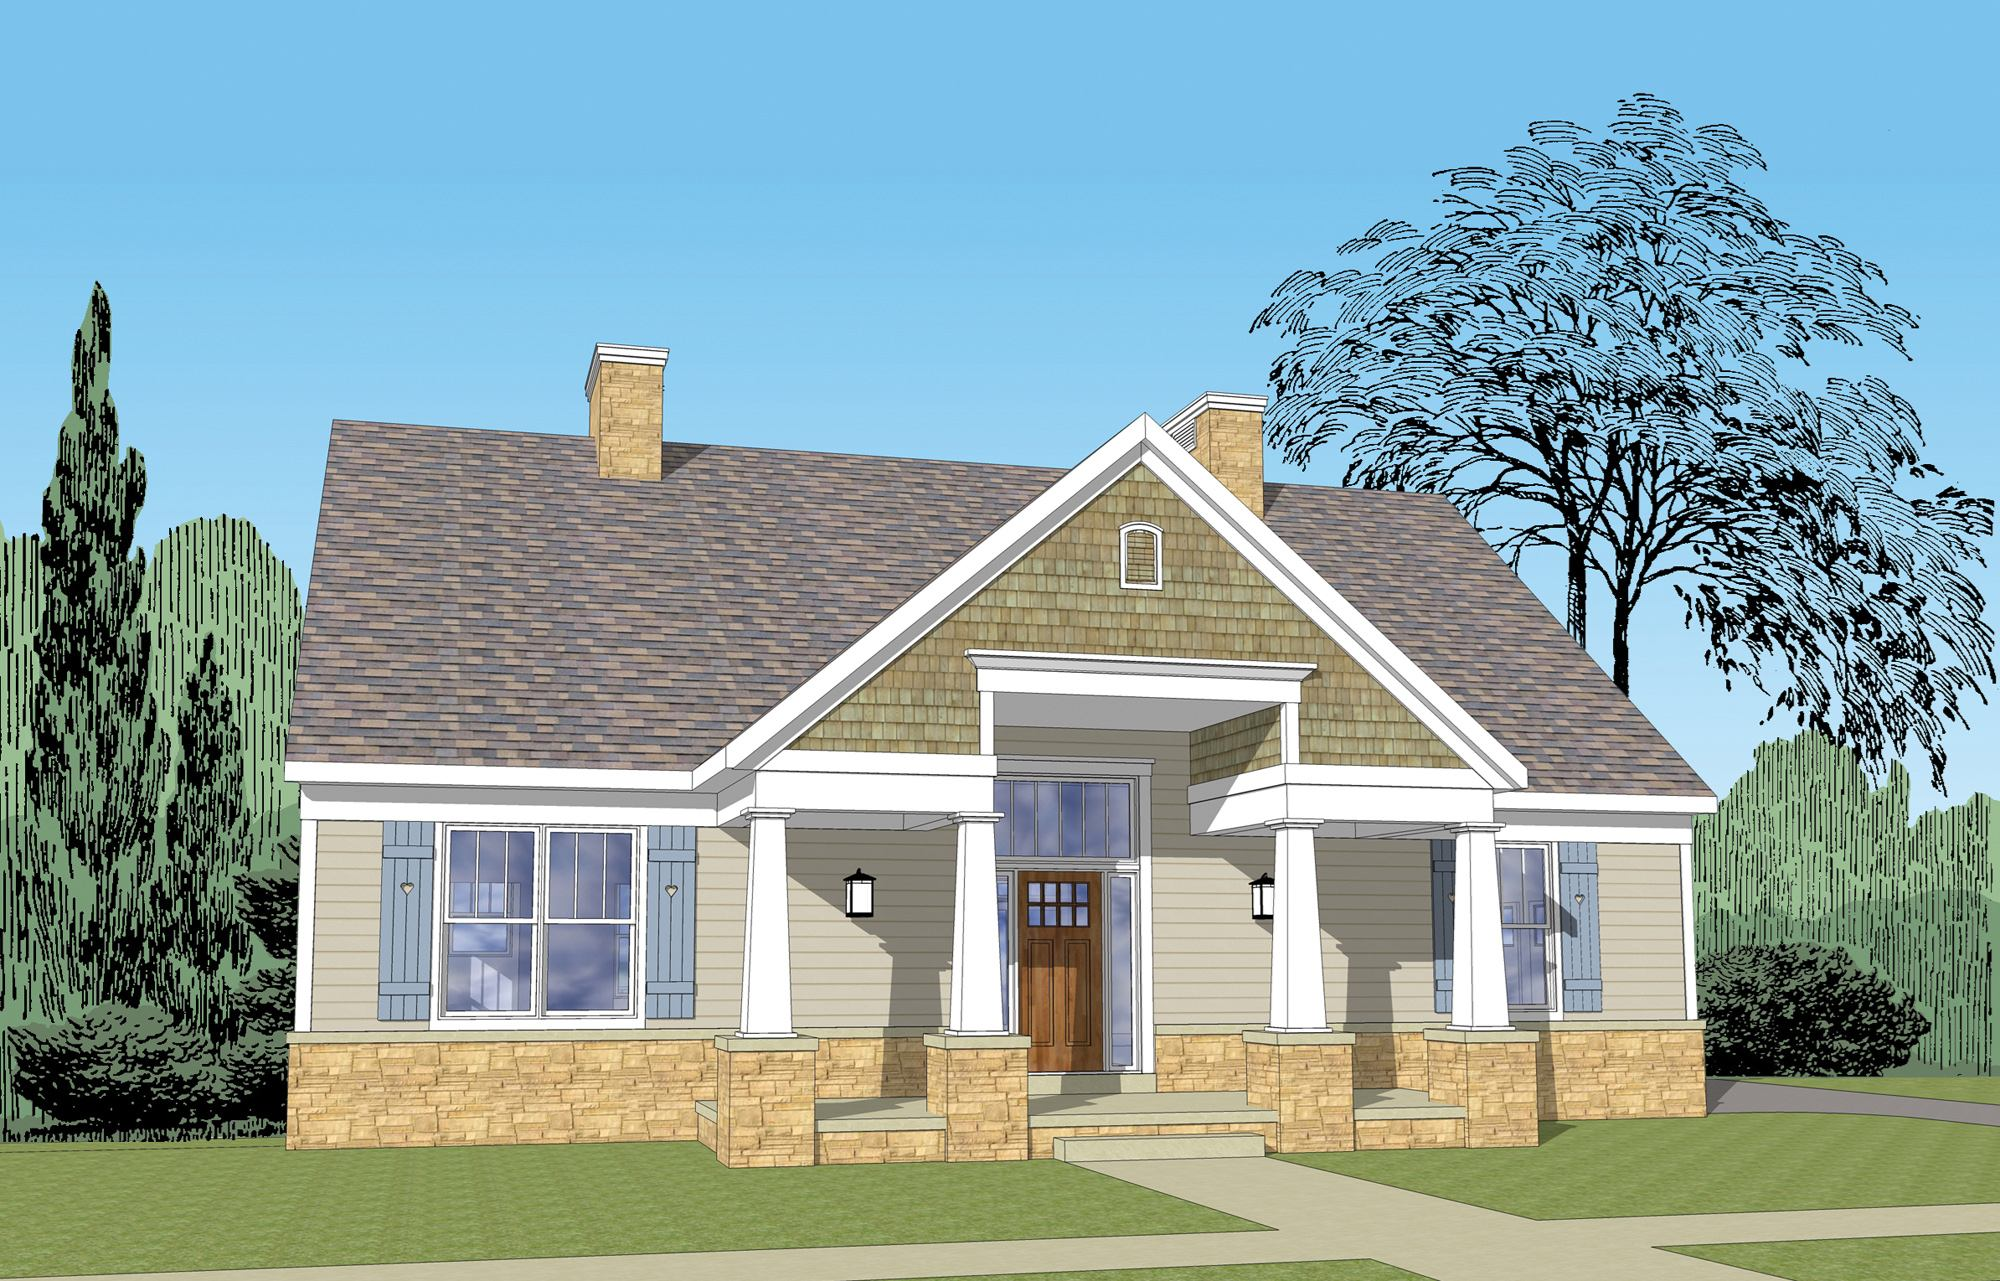 FourPlans: Small Home, Big Curb Appeal